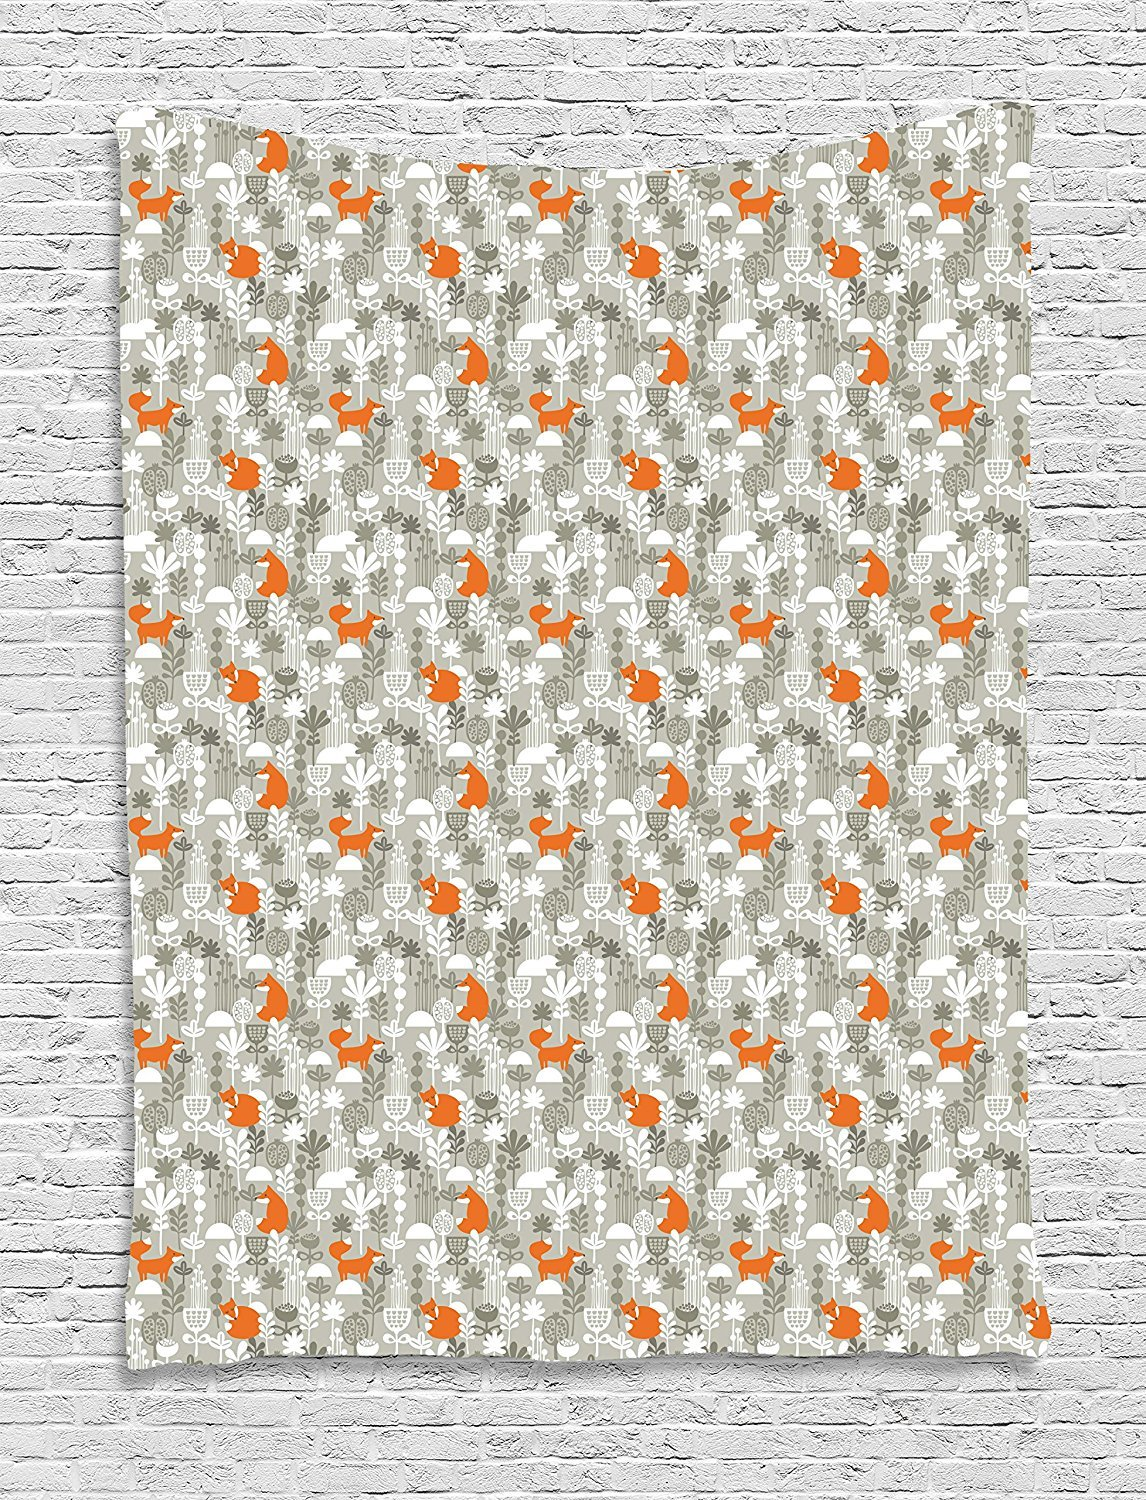 Fox Tapestry, Small Animals of the European Forests Doodle Style Floral Arrangement, Wall Hanging for Bedroom Living Room Dorm, 60 W X 80 L Inches, Resheda Green Orange White